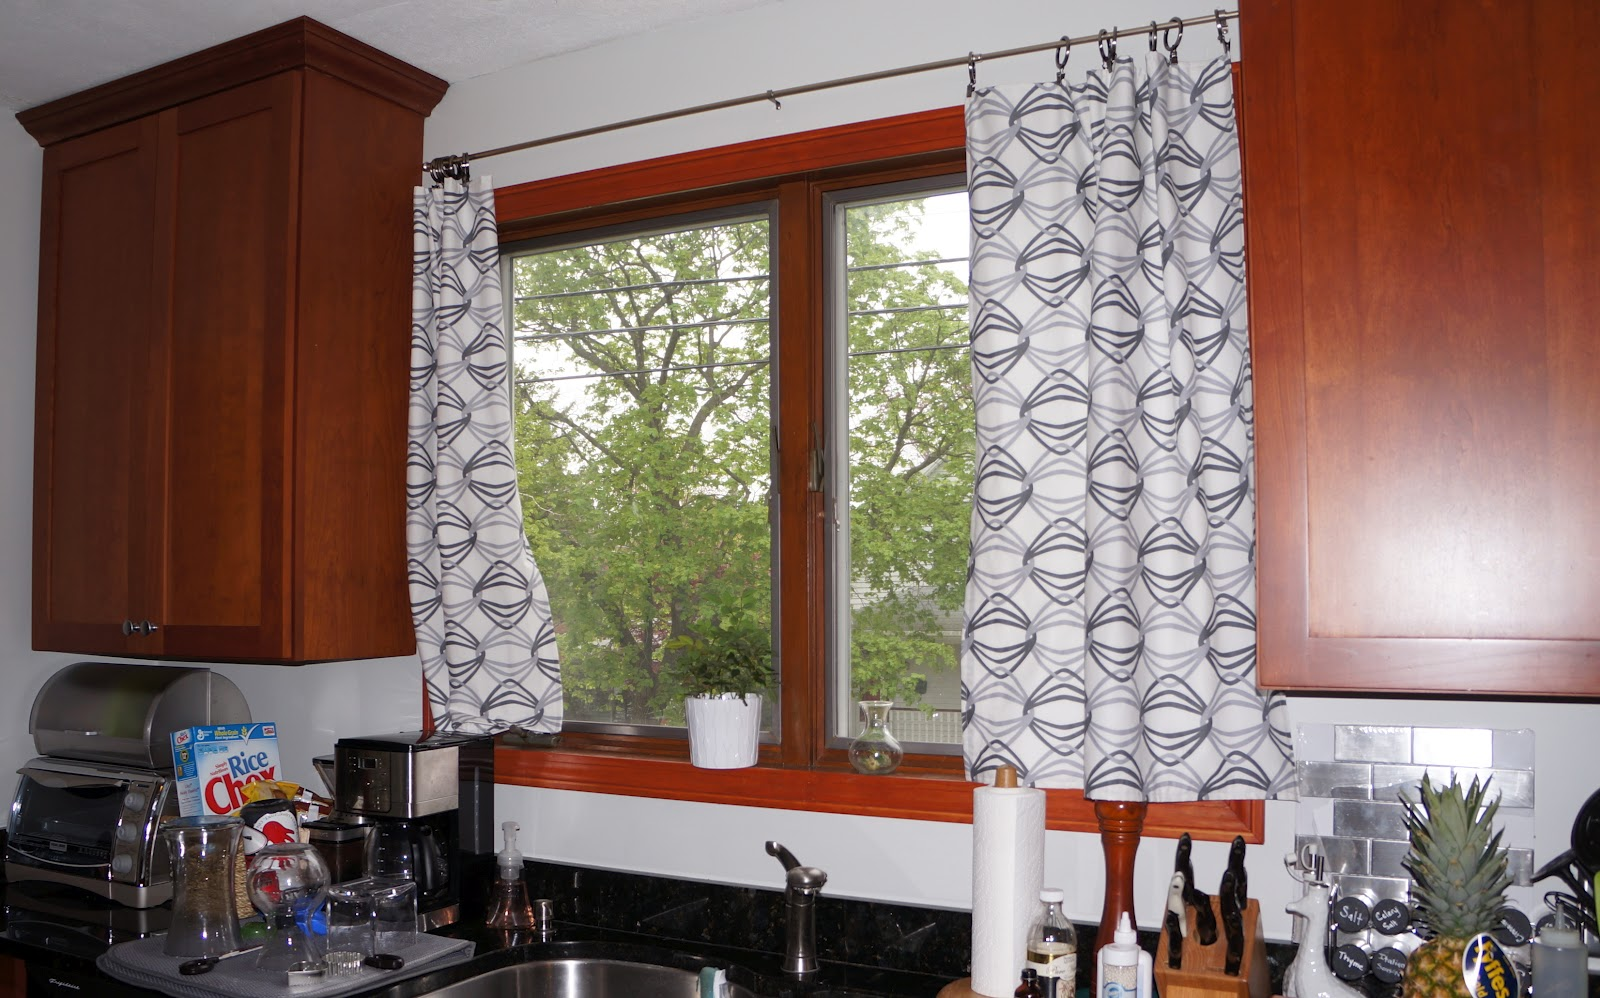 Curtain Patterns For Kitchen Curtains Yellow And Blue Decorate Our Home With Beautiful Curtains